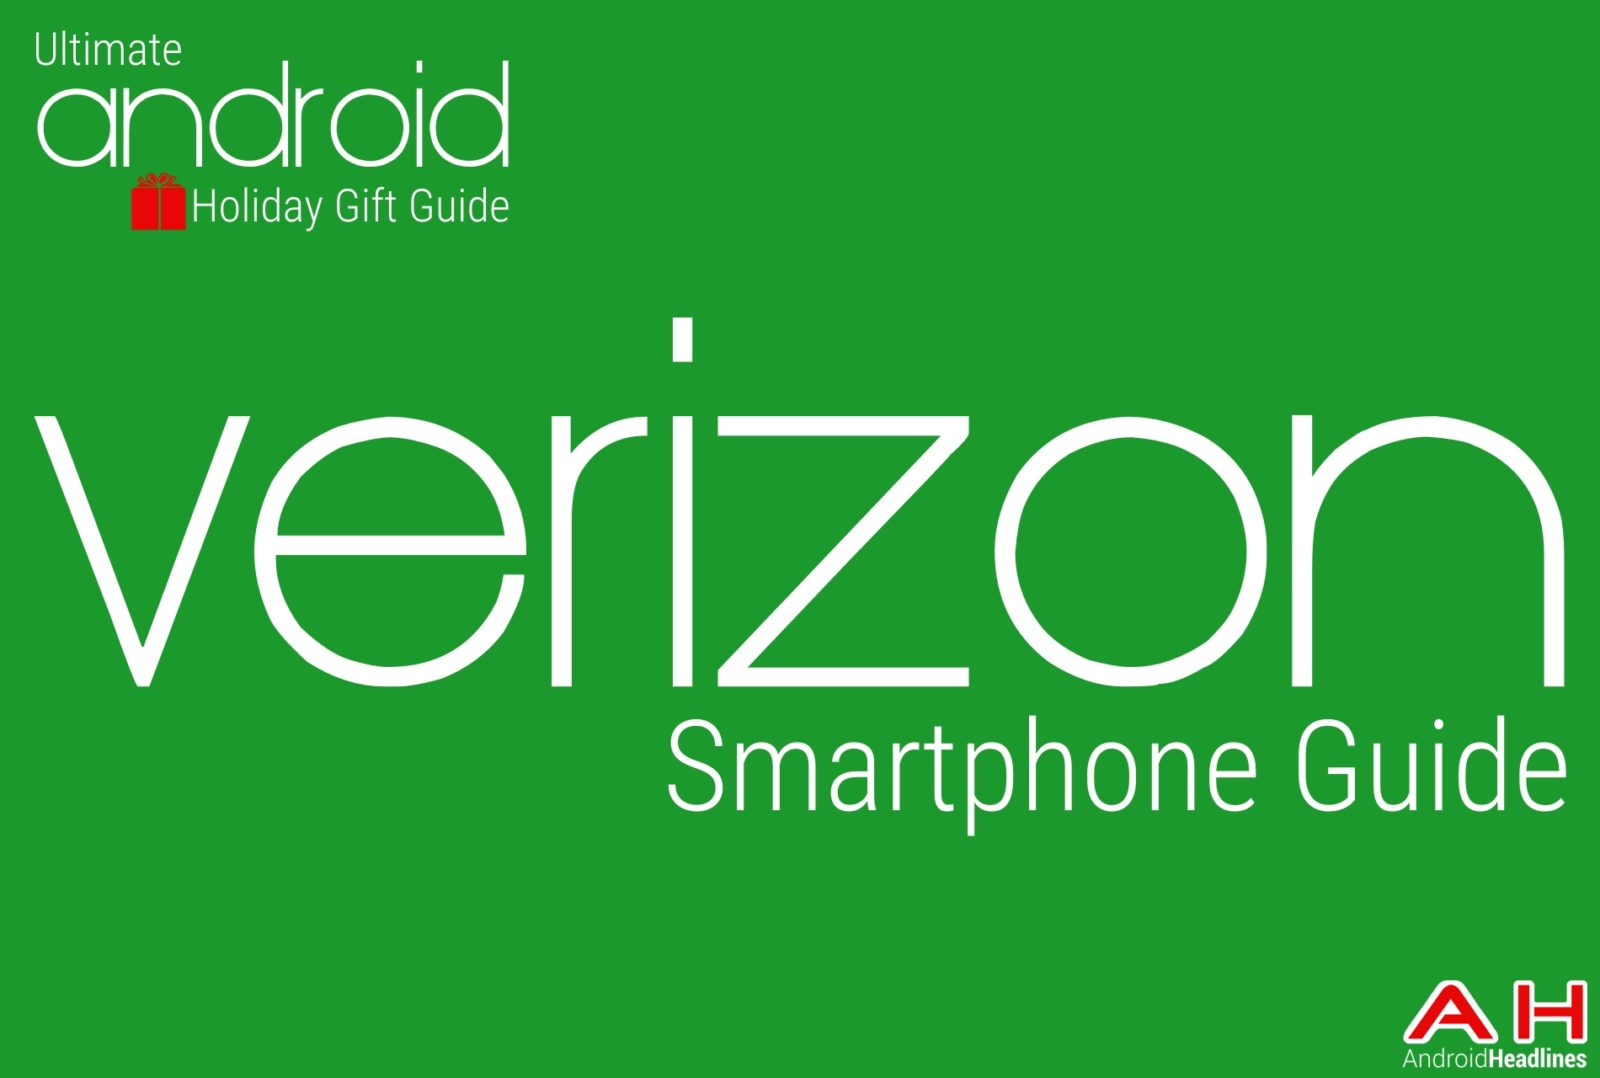 Android Verizon Smartphones Guide - Holiday Gift Guide Main Image